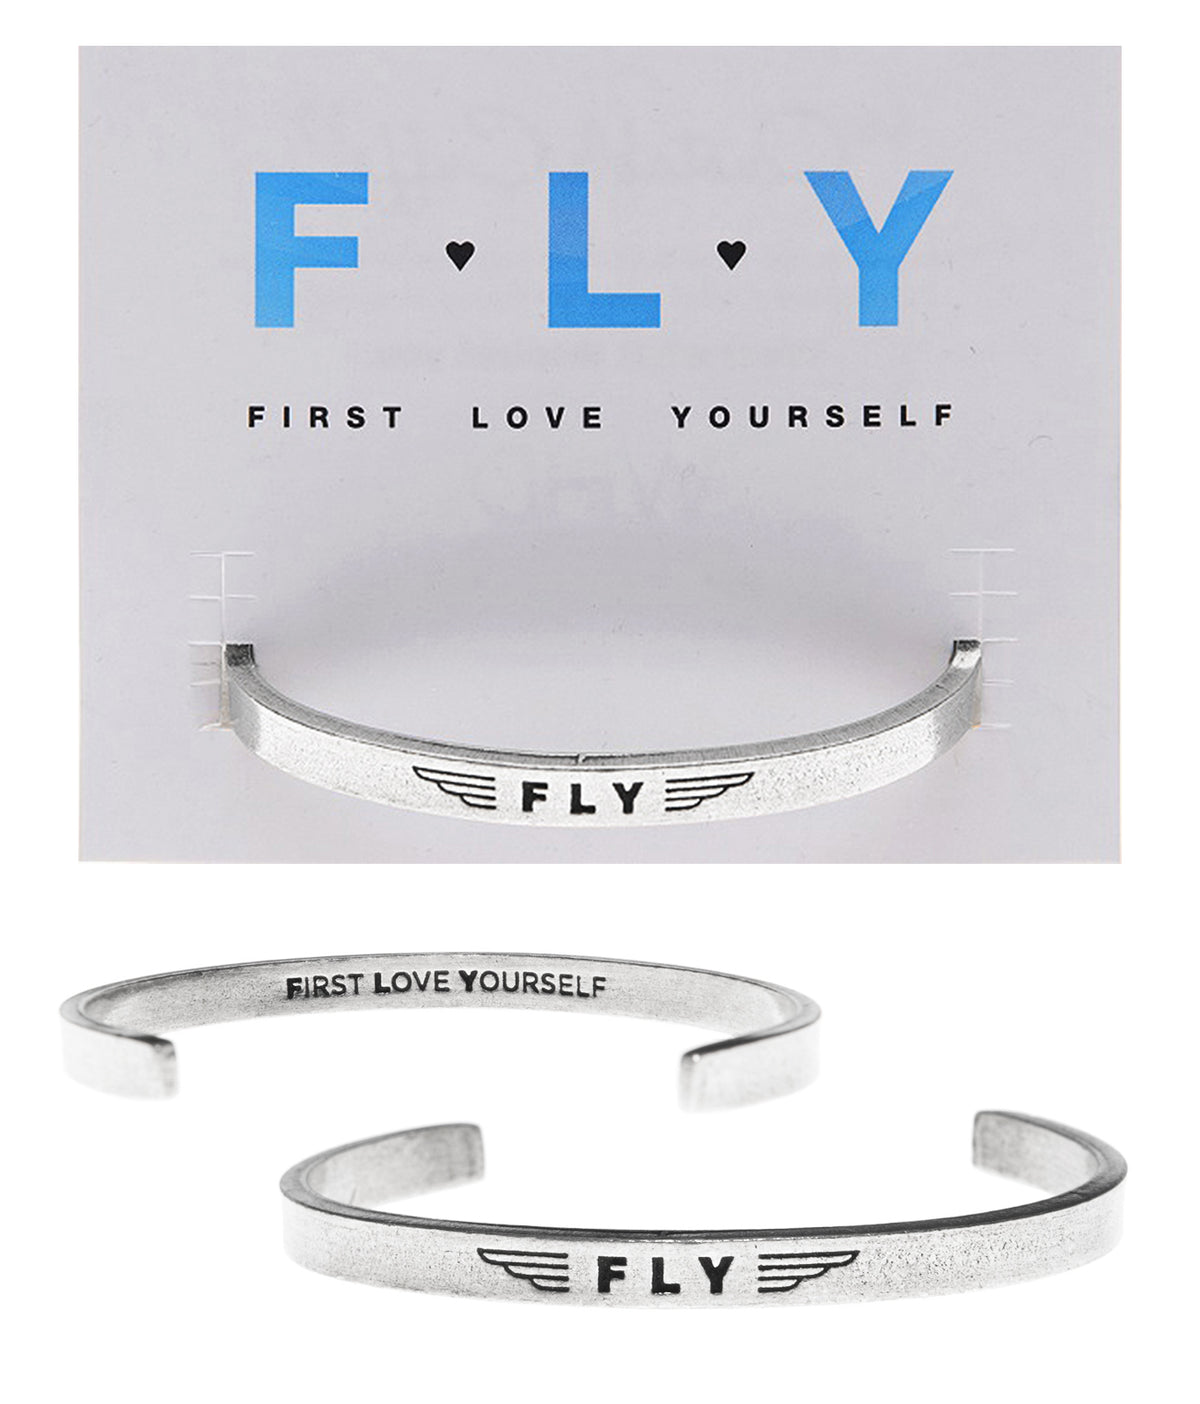 FLY (inside - First Love Yourself) Quotable Cuff | Quotable Cuff Bracelets